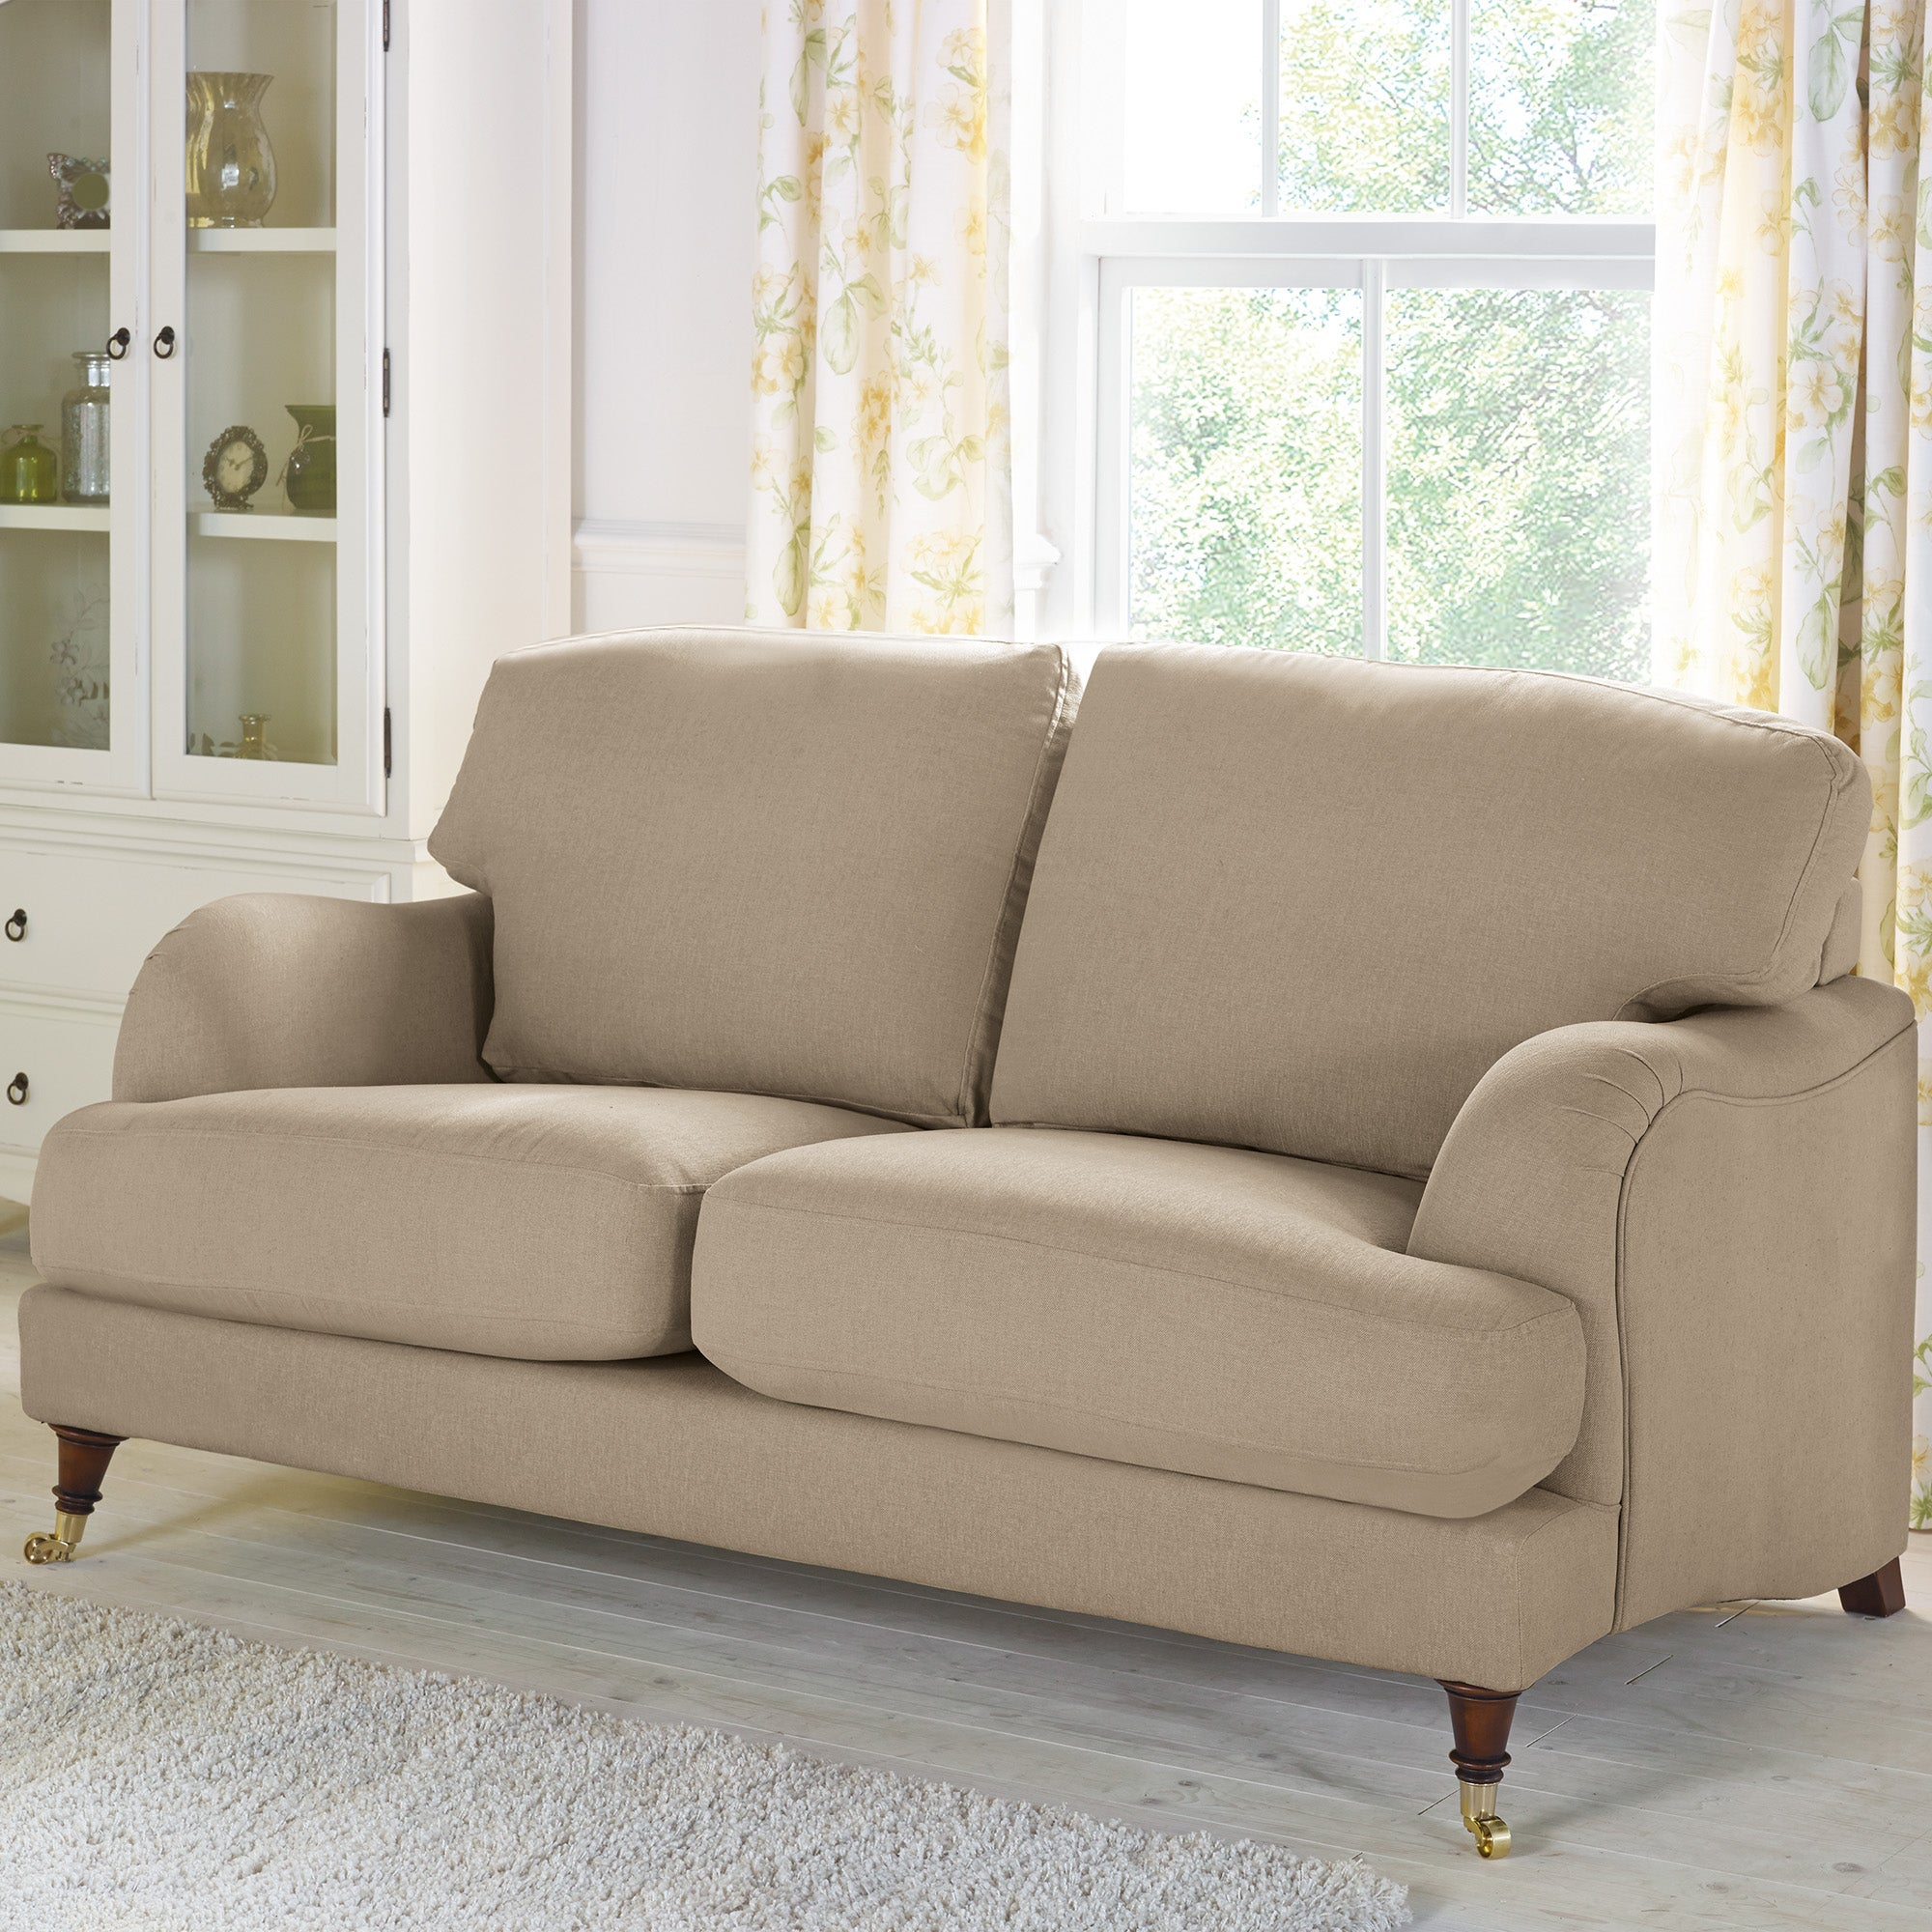 Malvern Sofa Collection